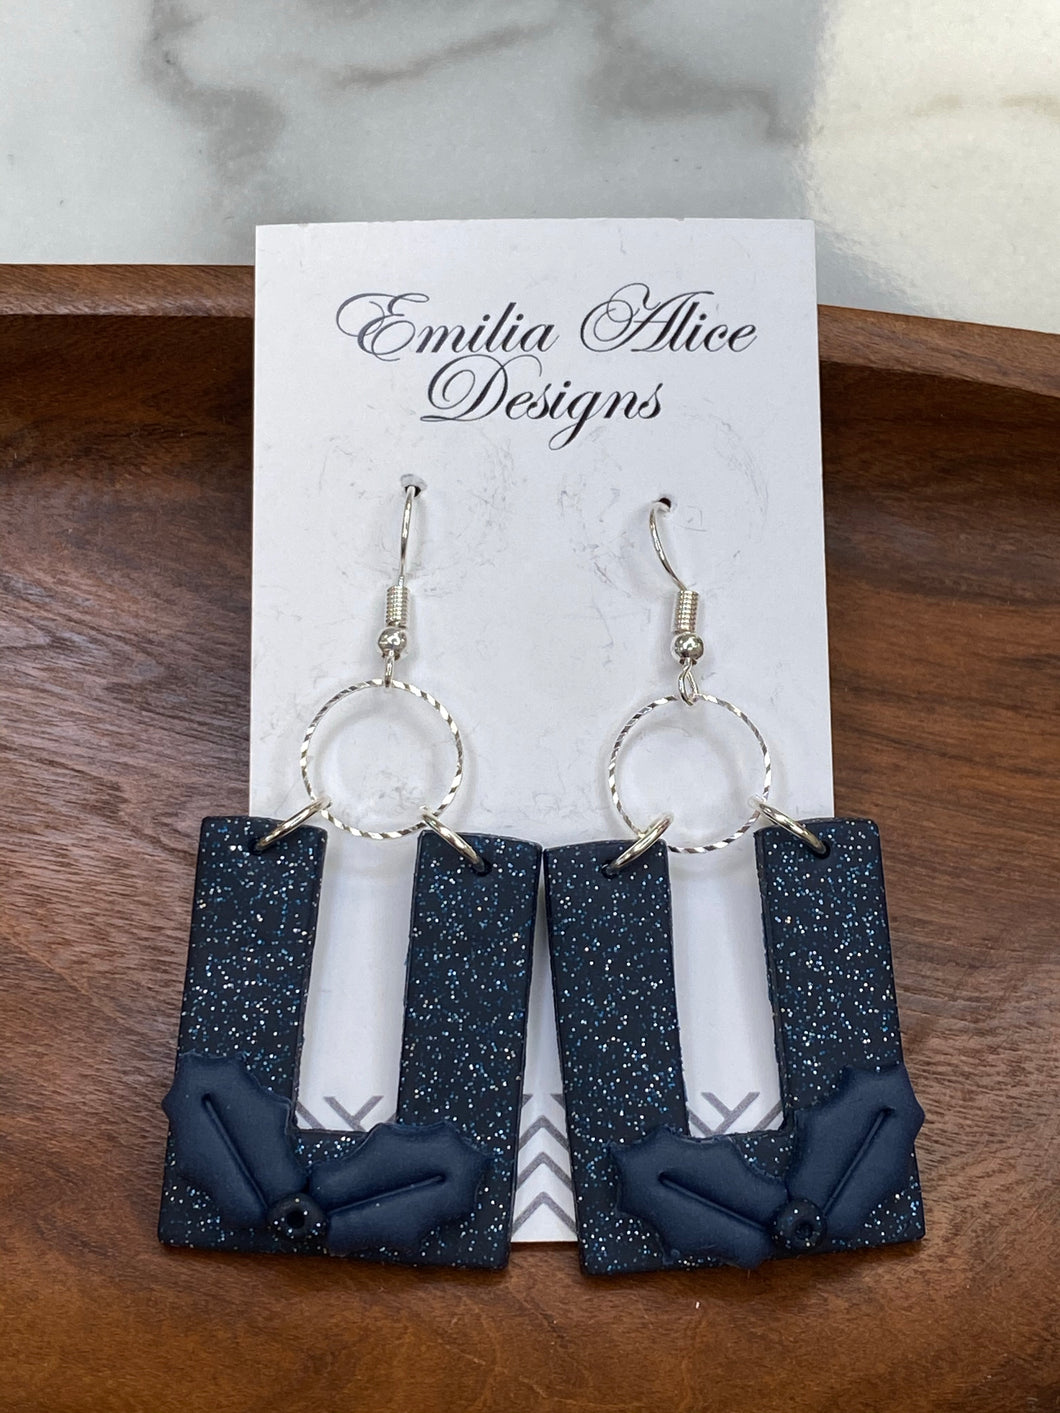 Emilia & Alice Designs - Clay Earrings - Navy Glitter Horseshoe with Holly Leaf Accent